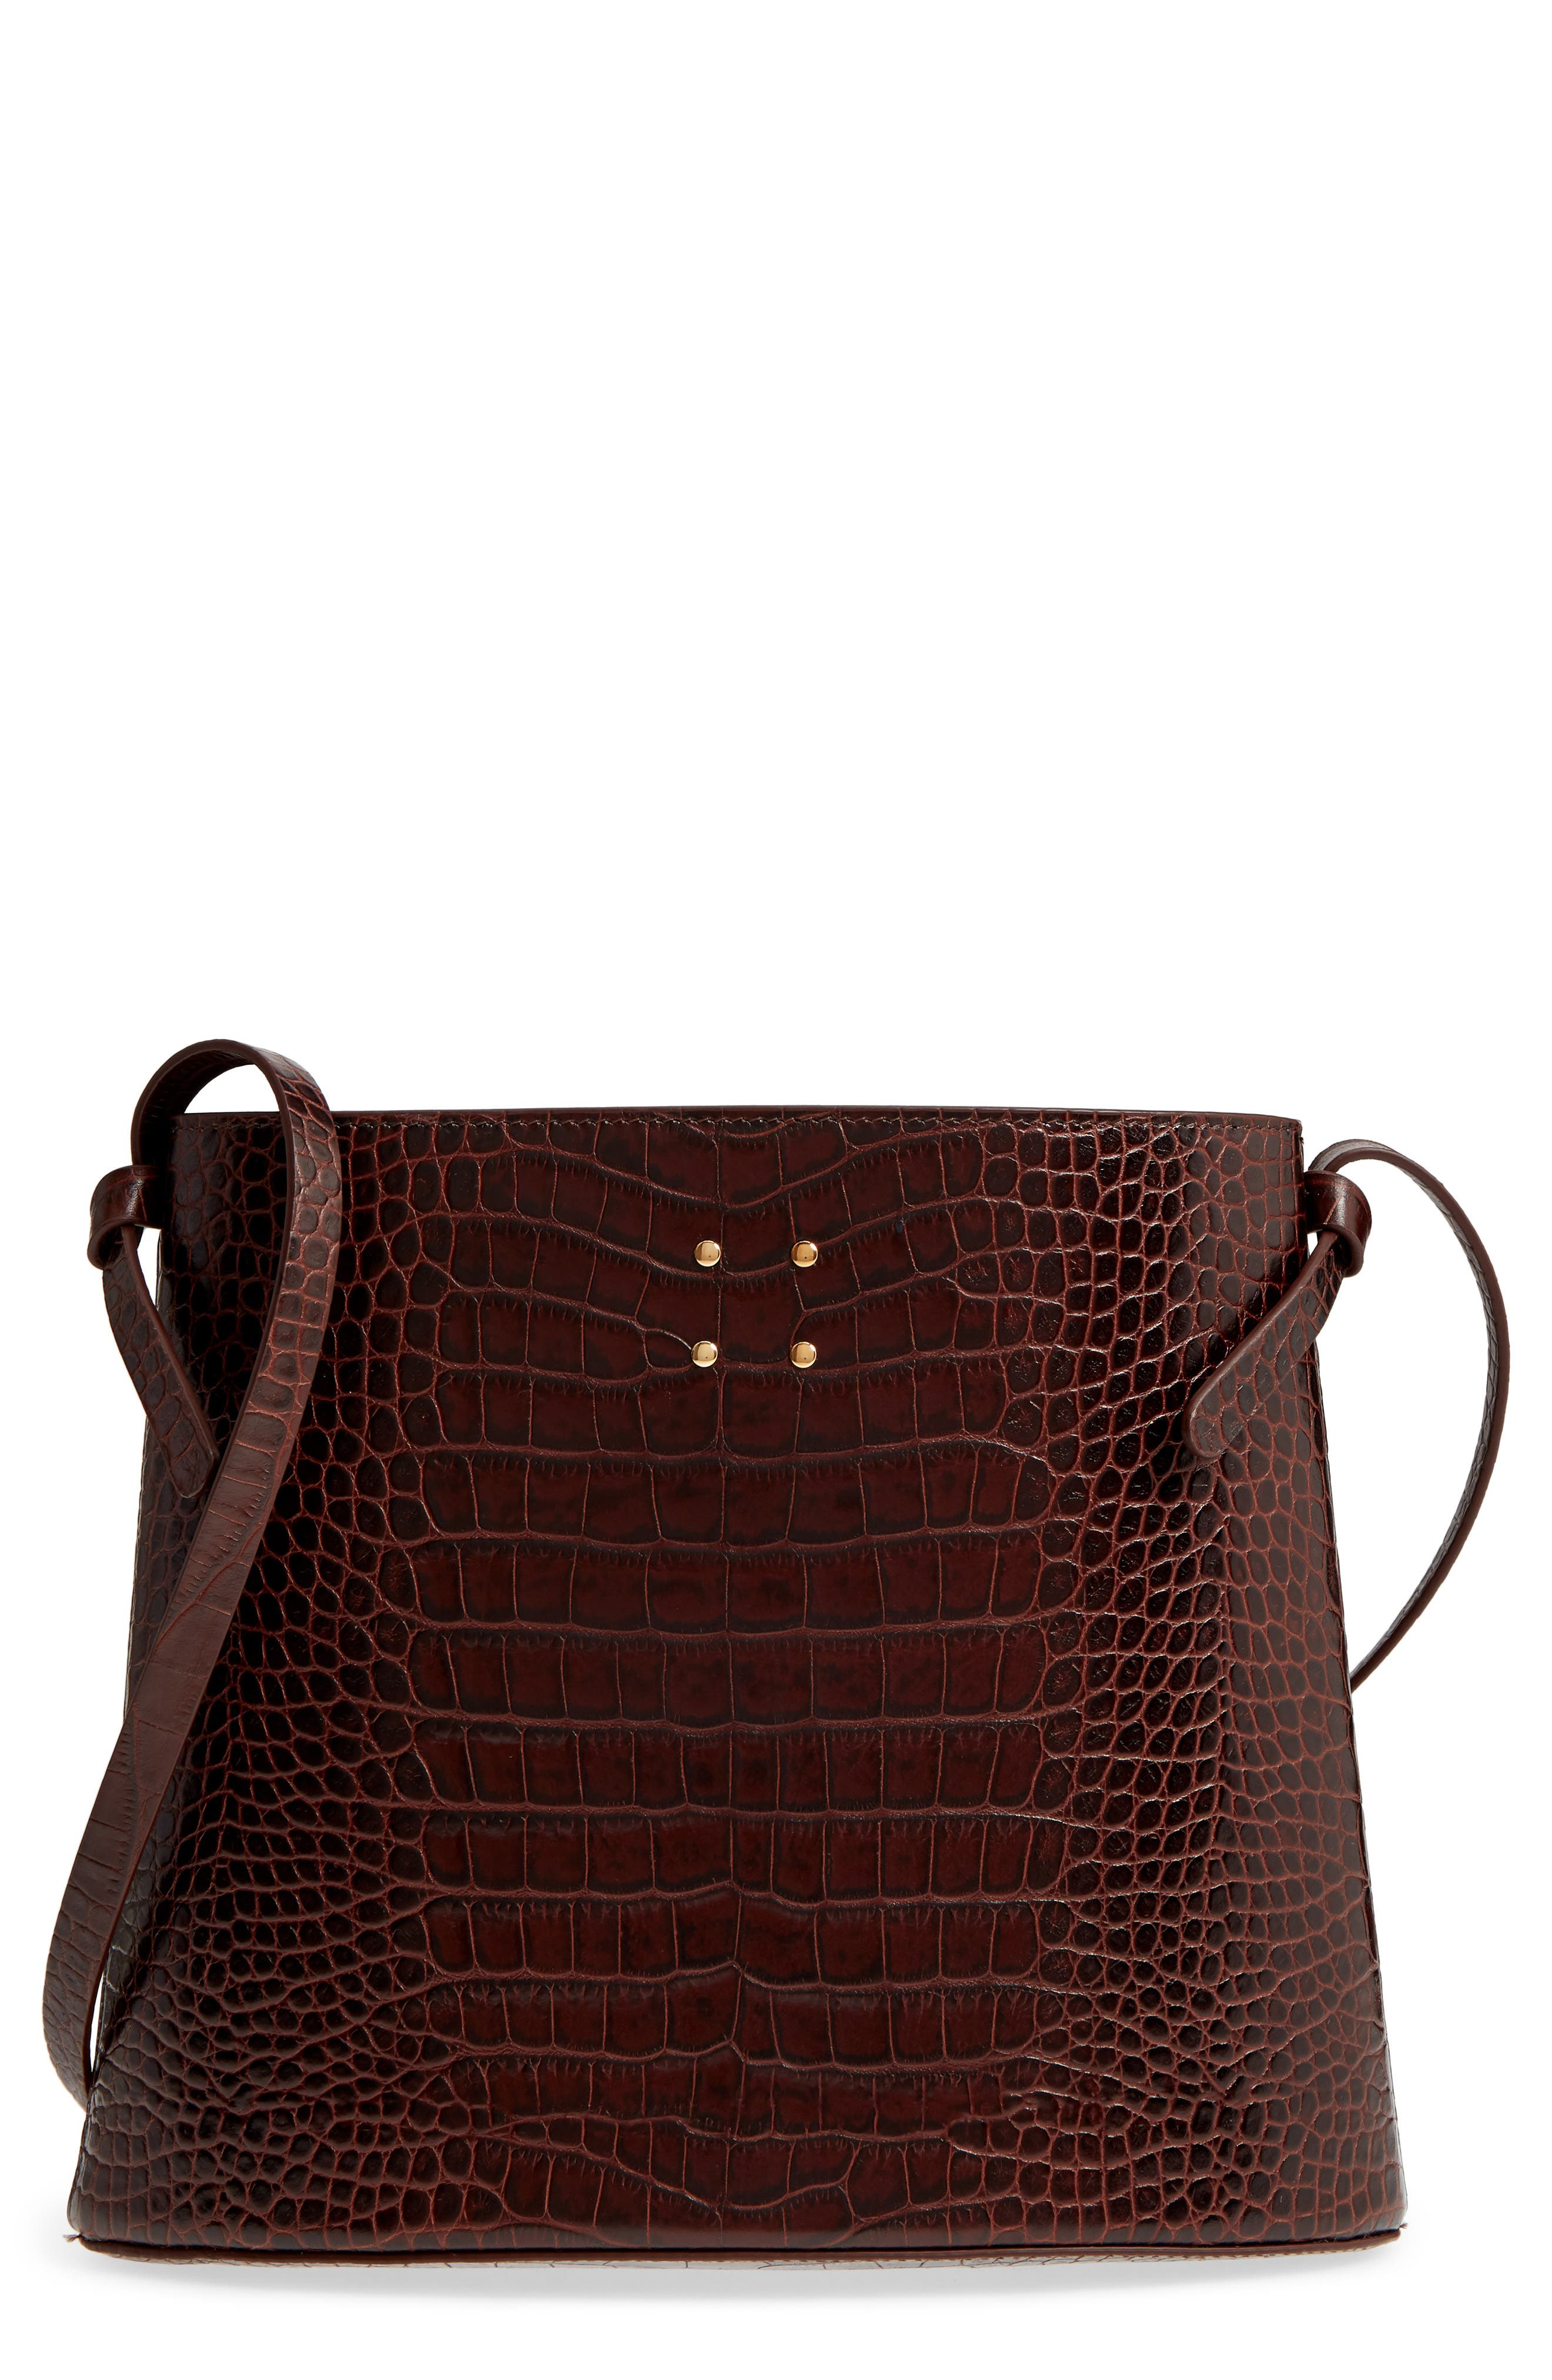 Sybil Croc Embossed Leather Tote,                             Main thumbnail 1, color,                             CHOCOLATE BROWN